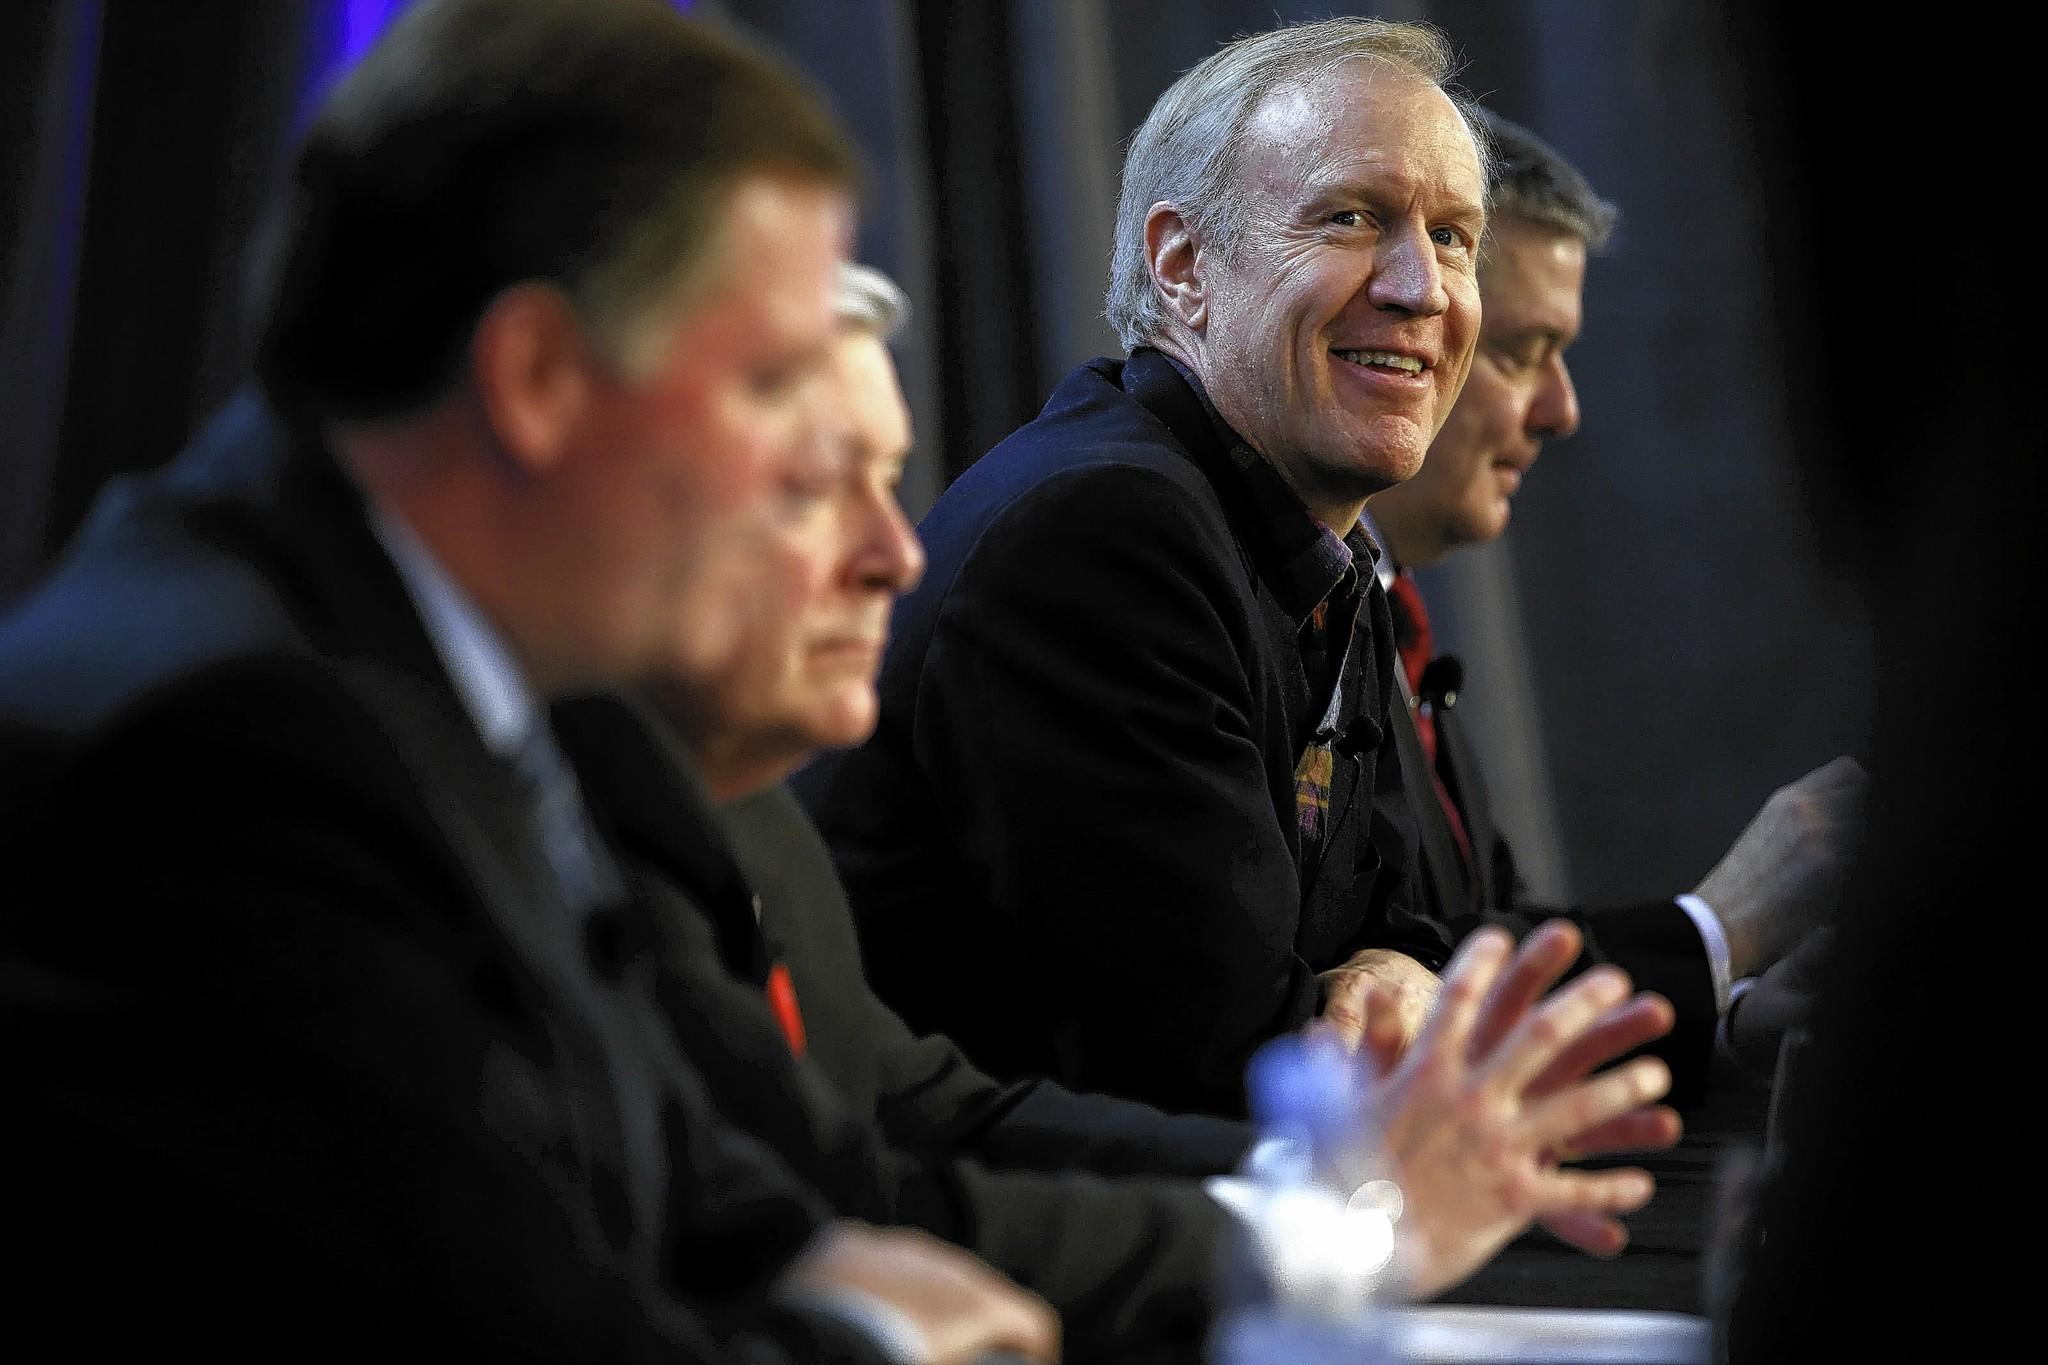 The business dealings of Republican Bruce Rauner could offer ammunition for his challengers in the governors race.